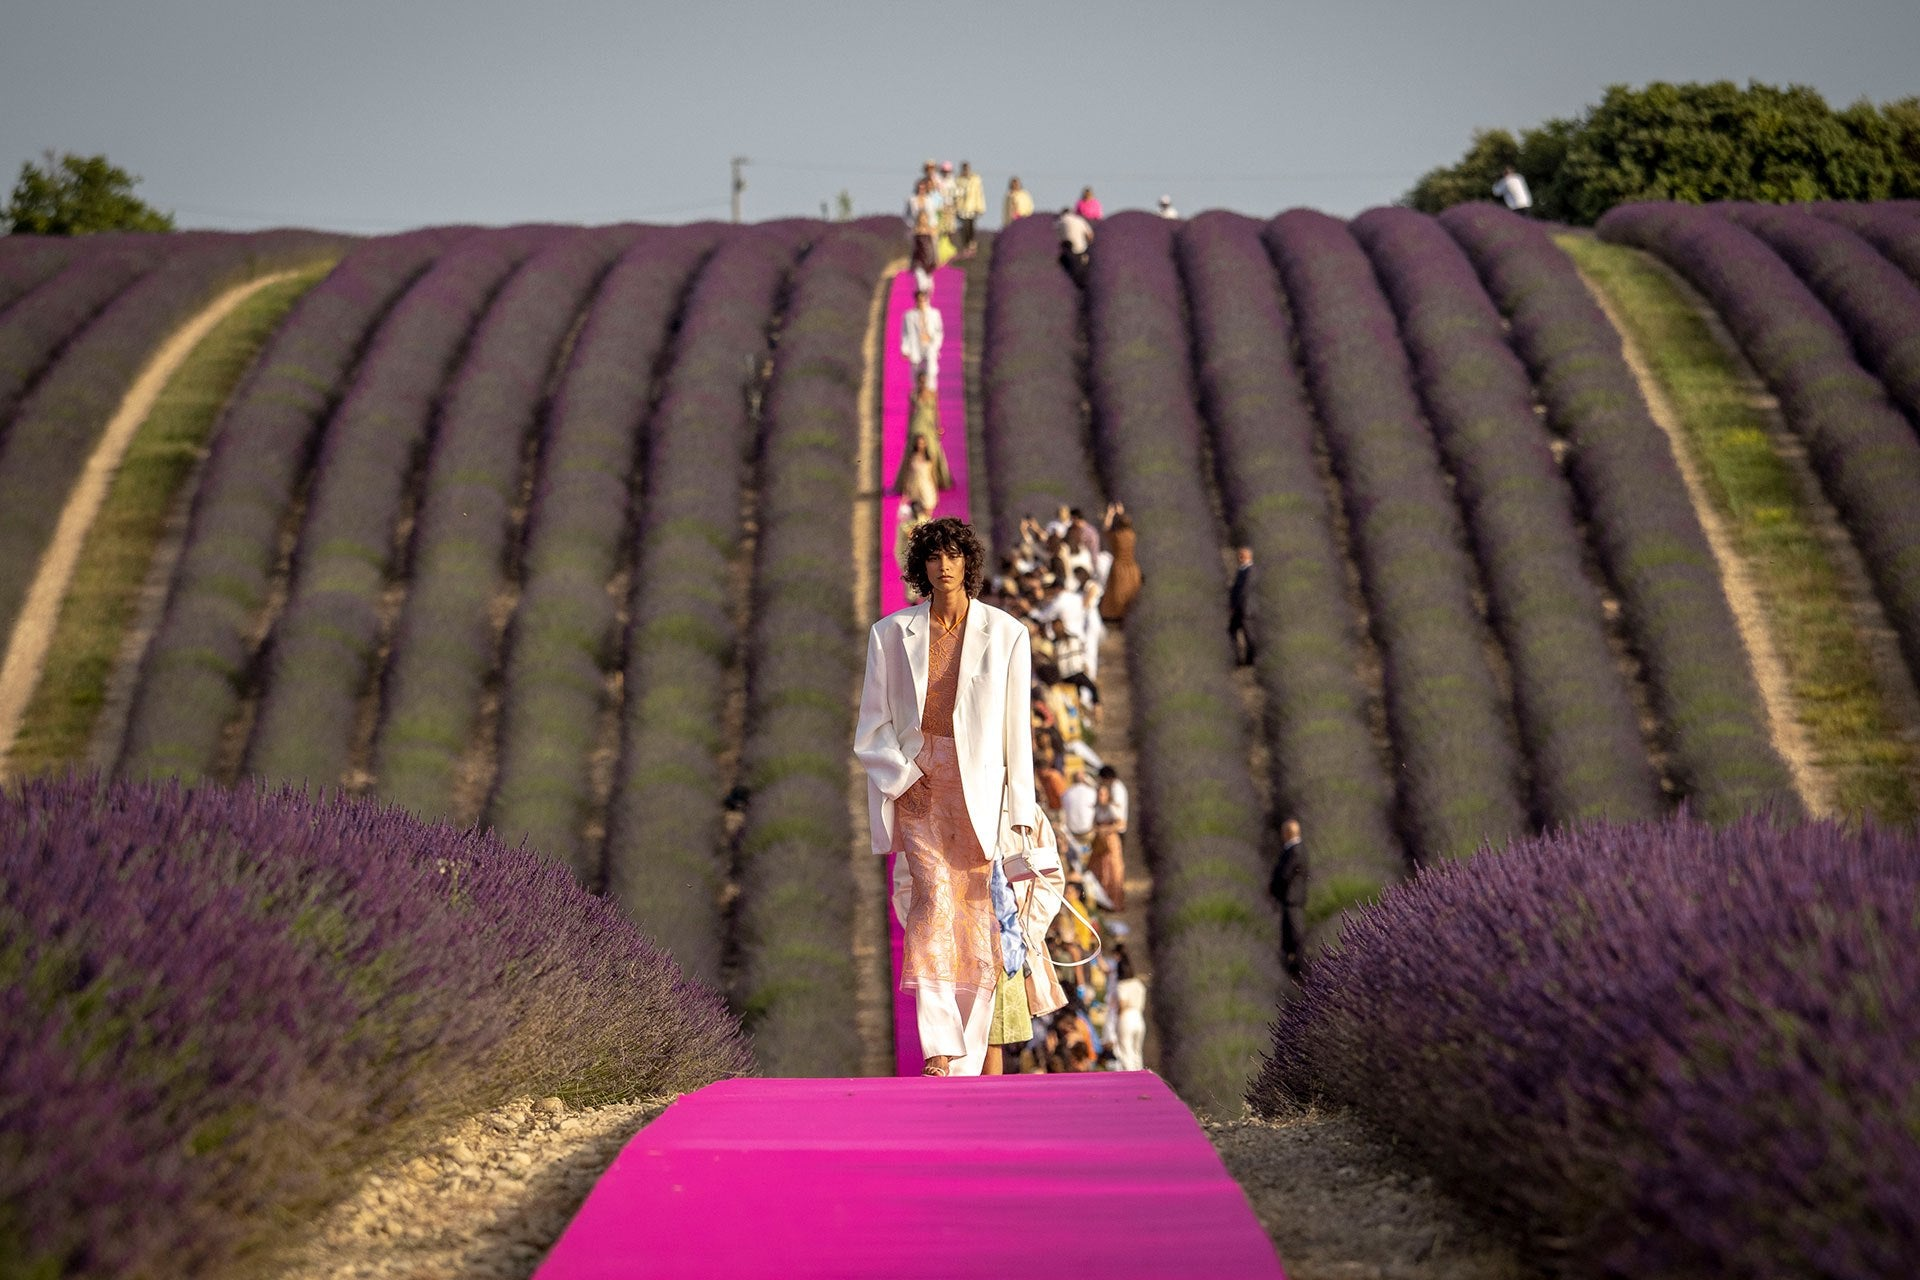 Jacquemus Spring 2020 Fashion Show in Valensole, France